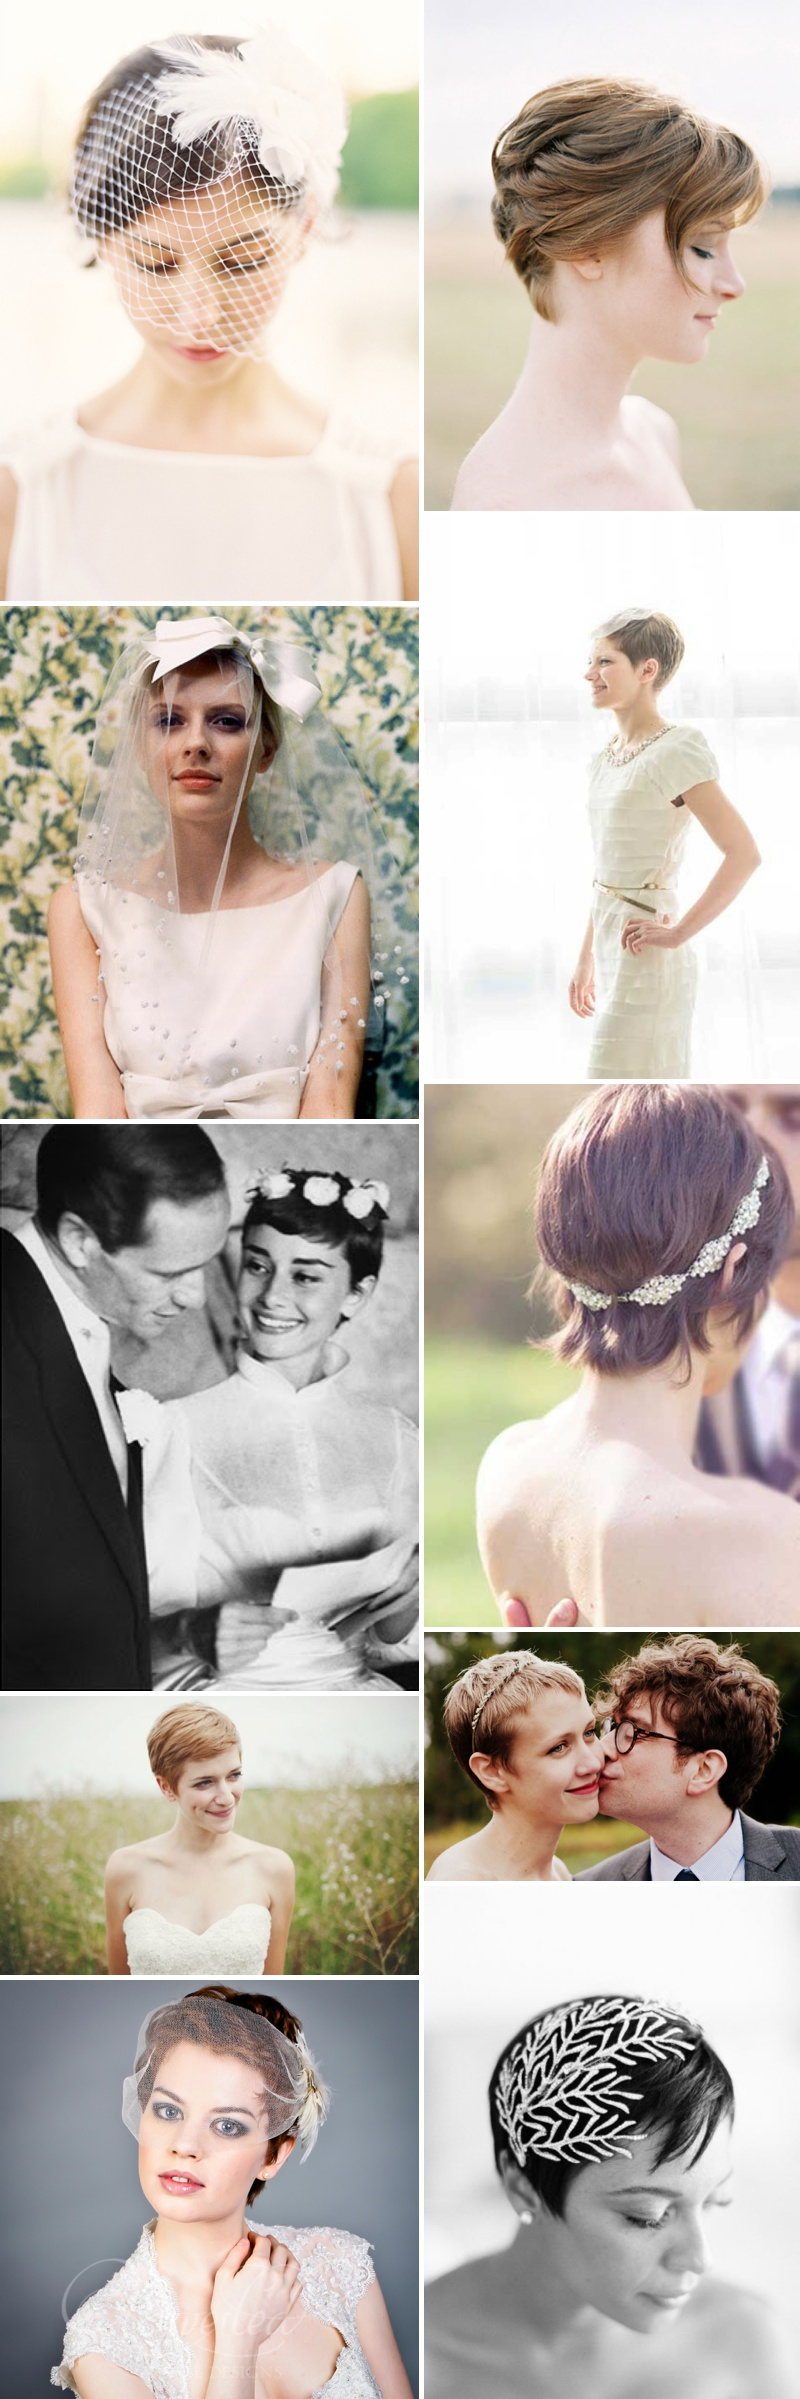 Short Chic Wedding Hair Inspiration_0044